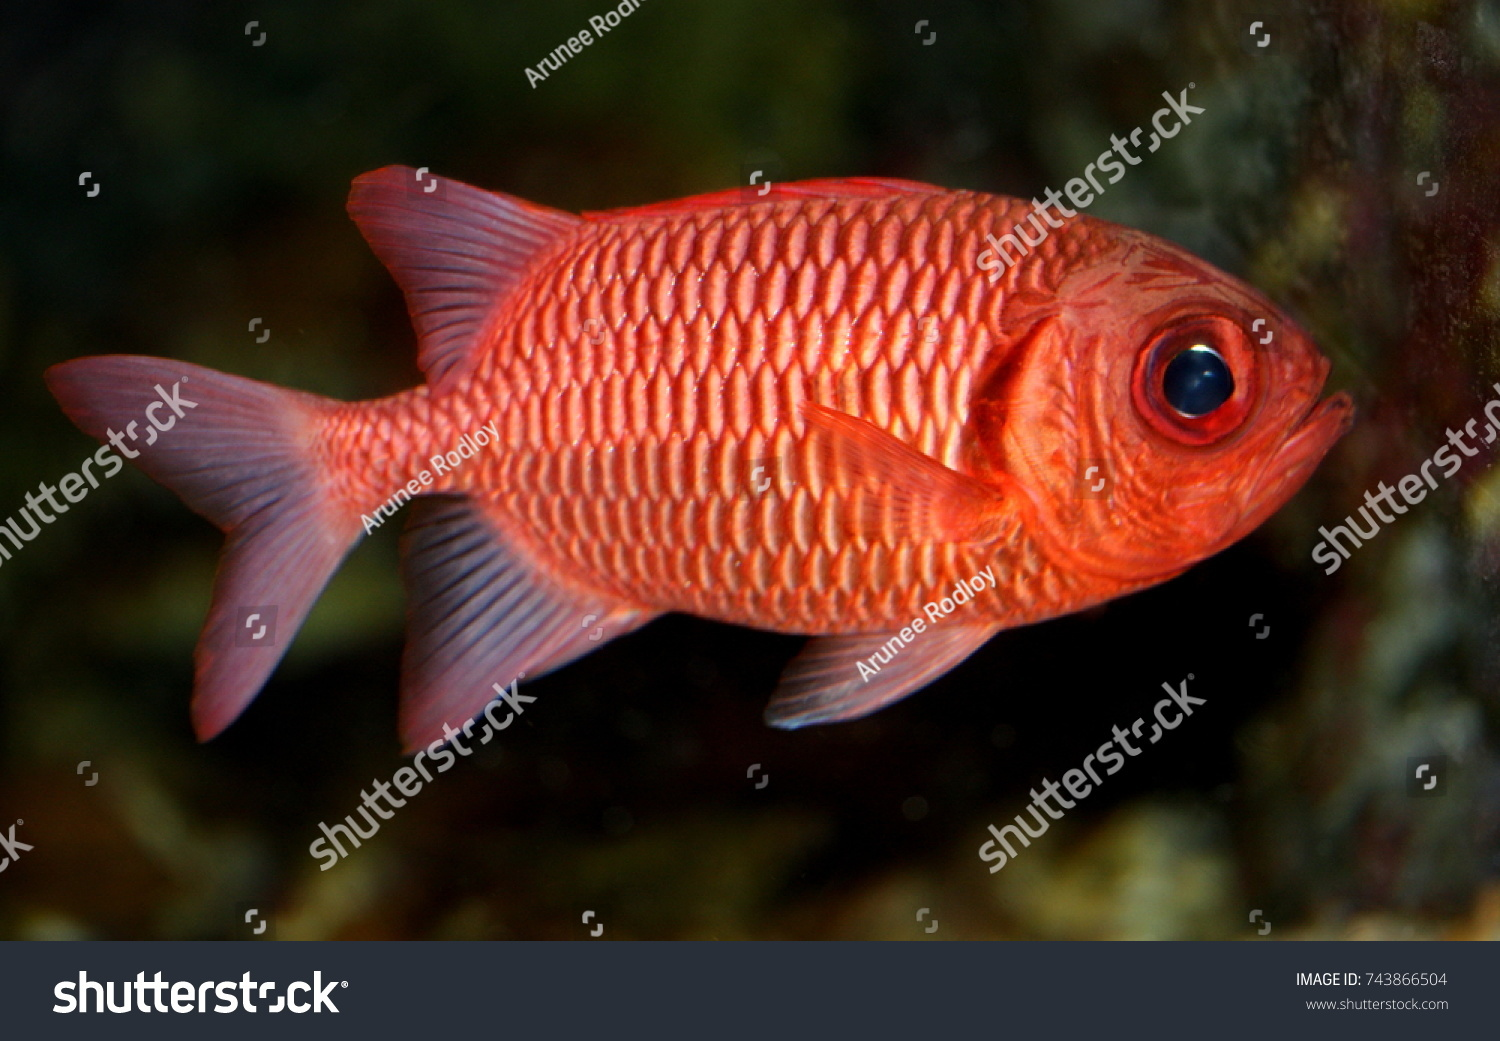 Colorful Ornamental Marine Fish Big Eye Stock Photo (Royalty Free ...